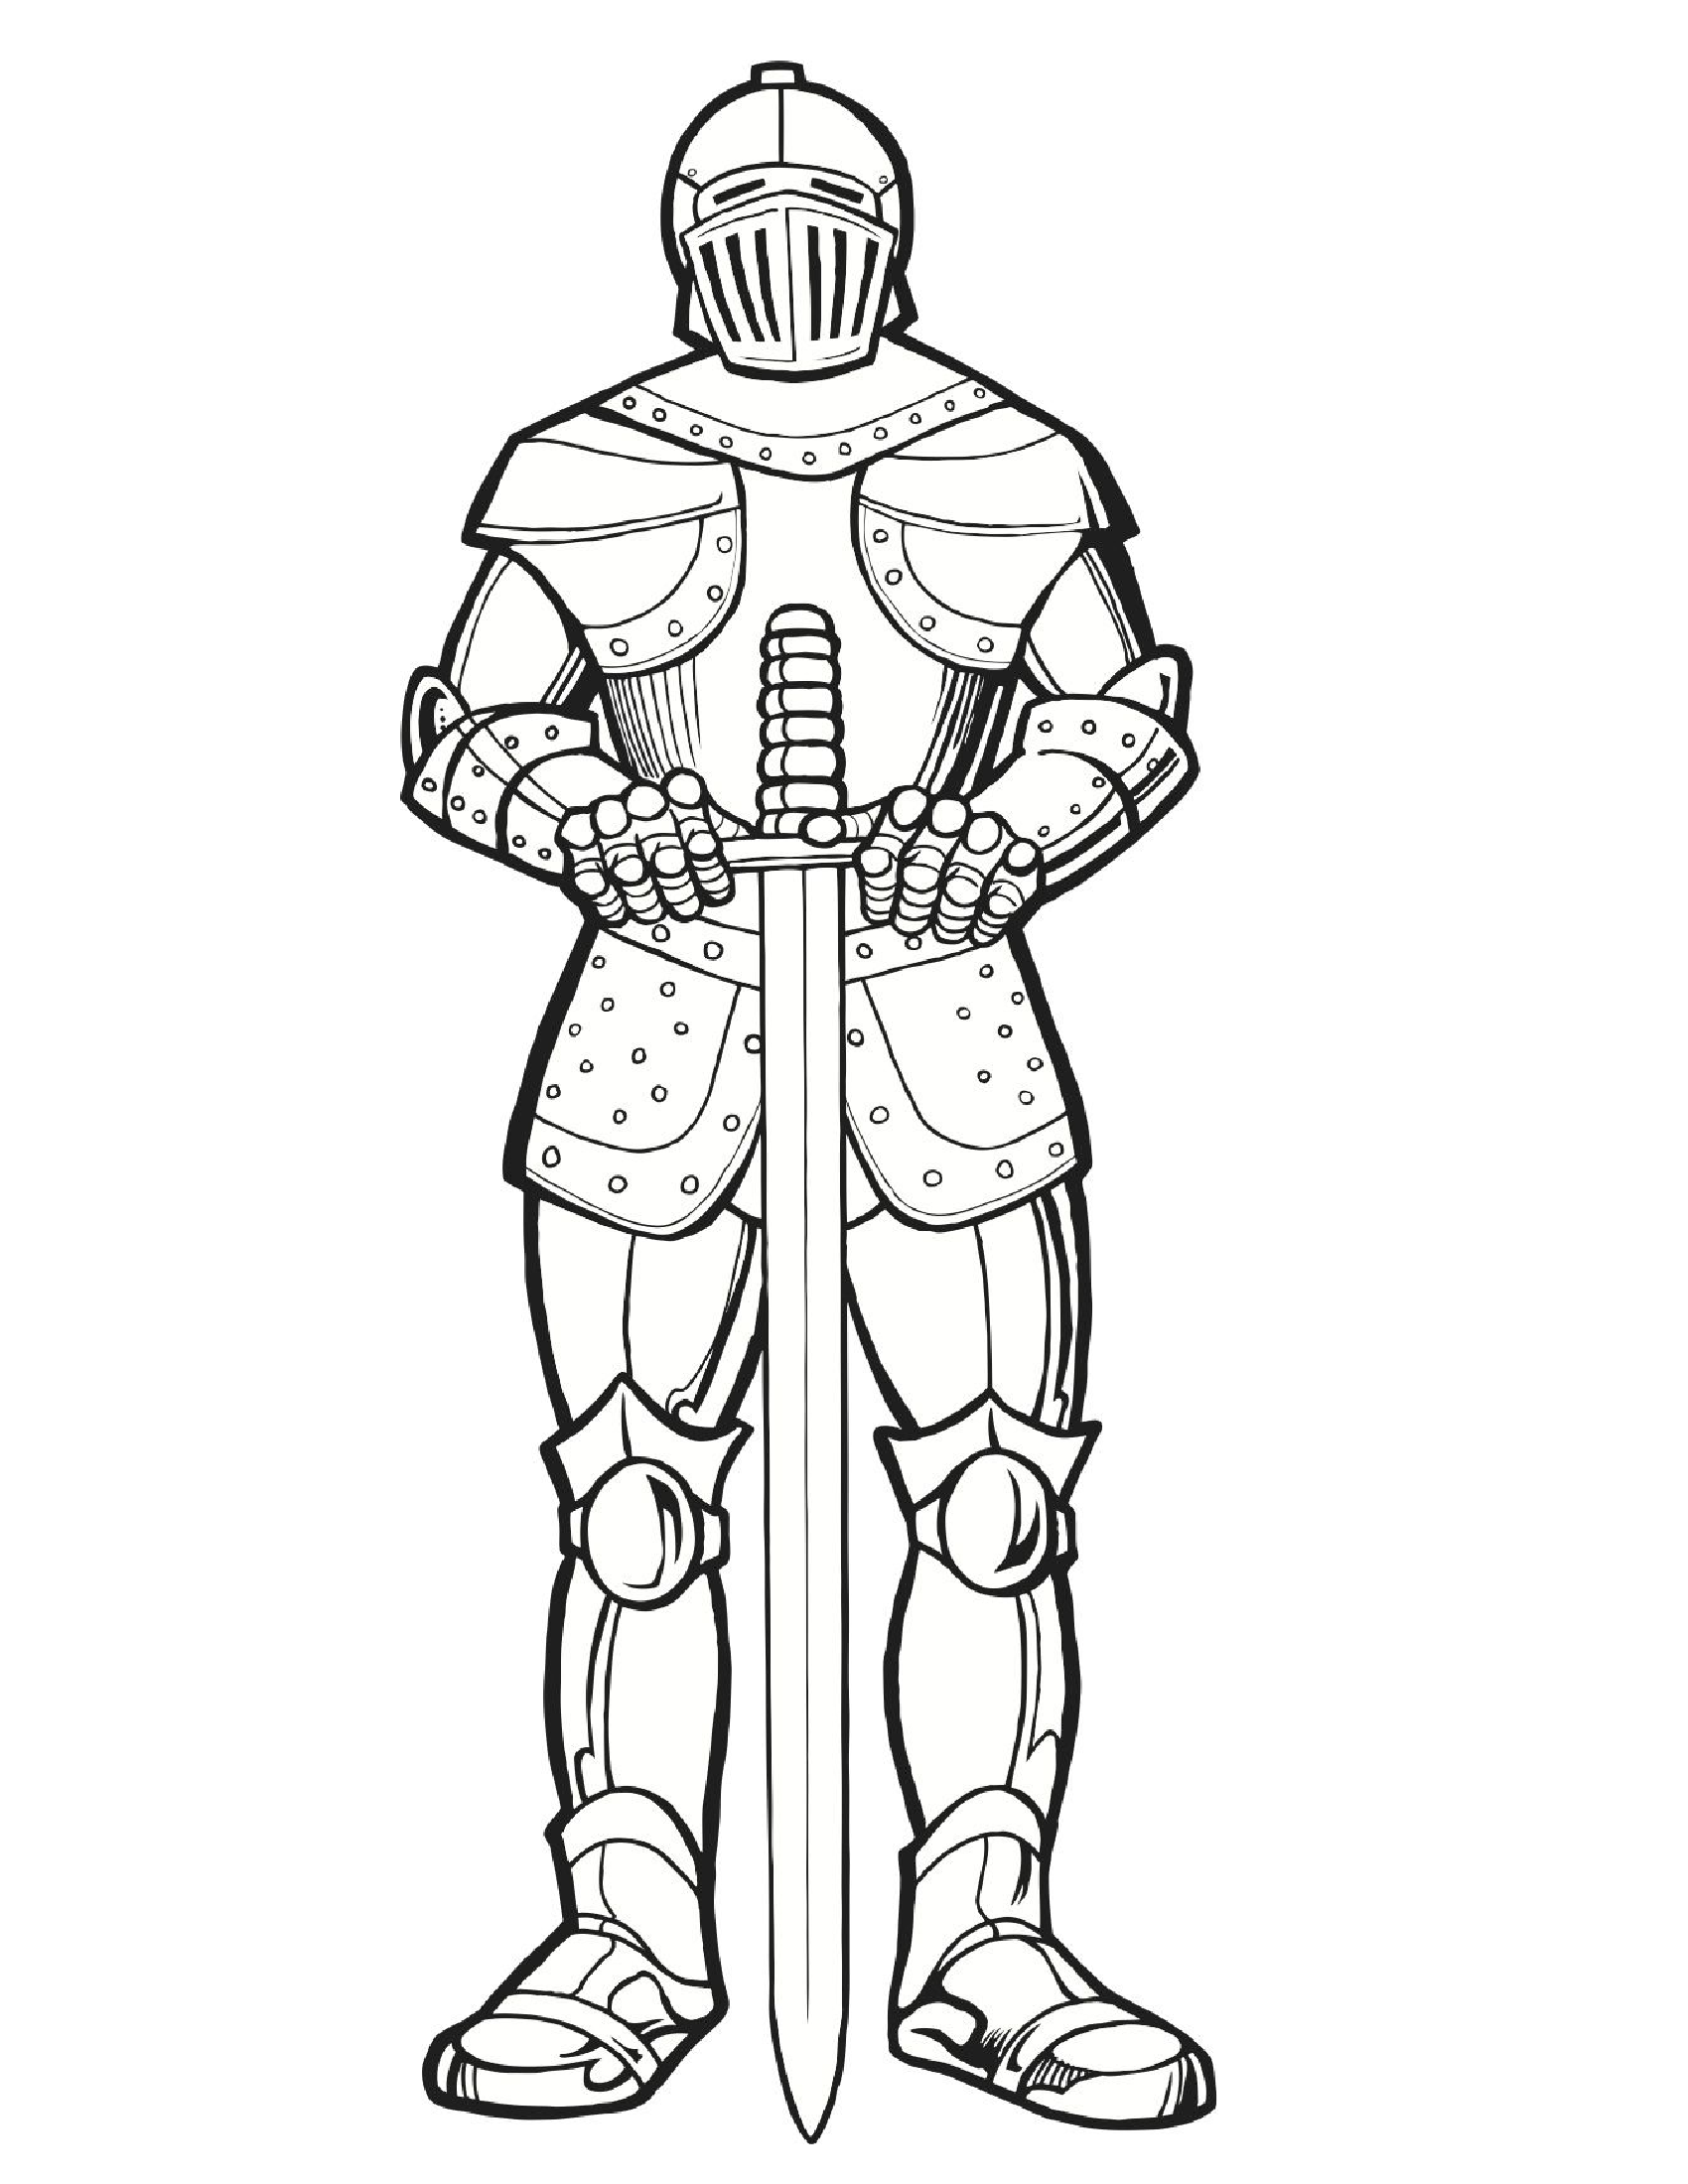 Knight Colouring Page | Knight/princess/mid Evil | Coloring